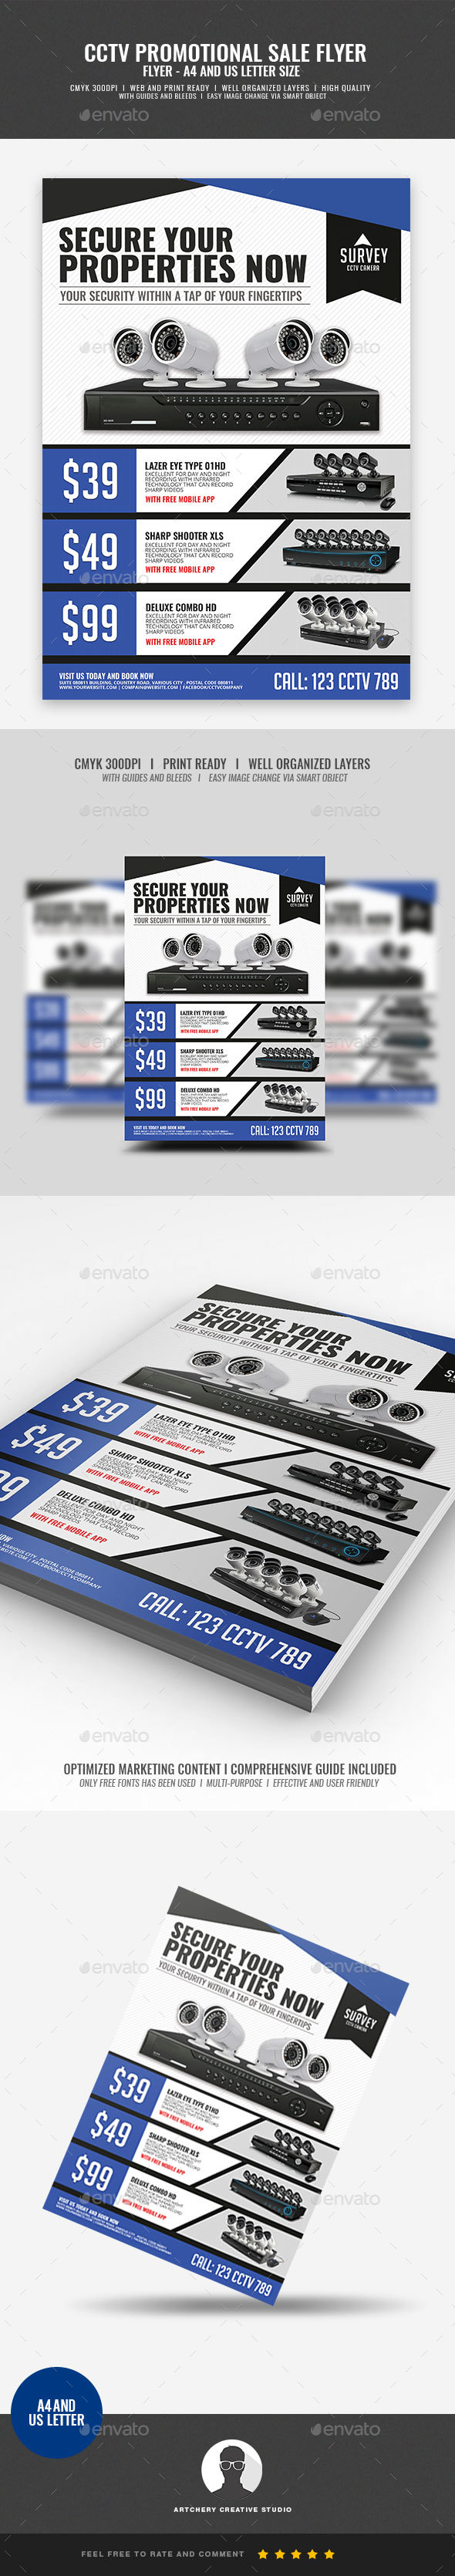 GraphicRiver CCTV Promotional Product Flyer 21009082